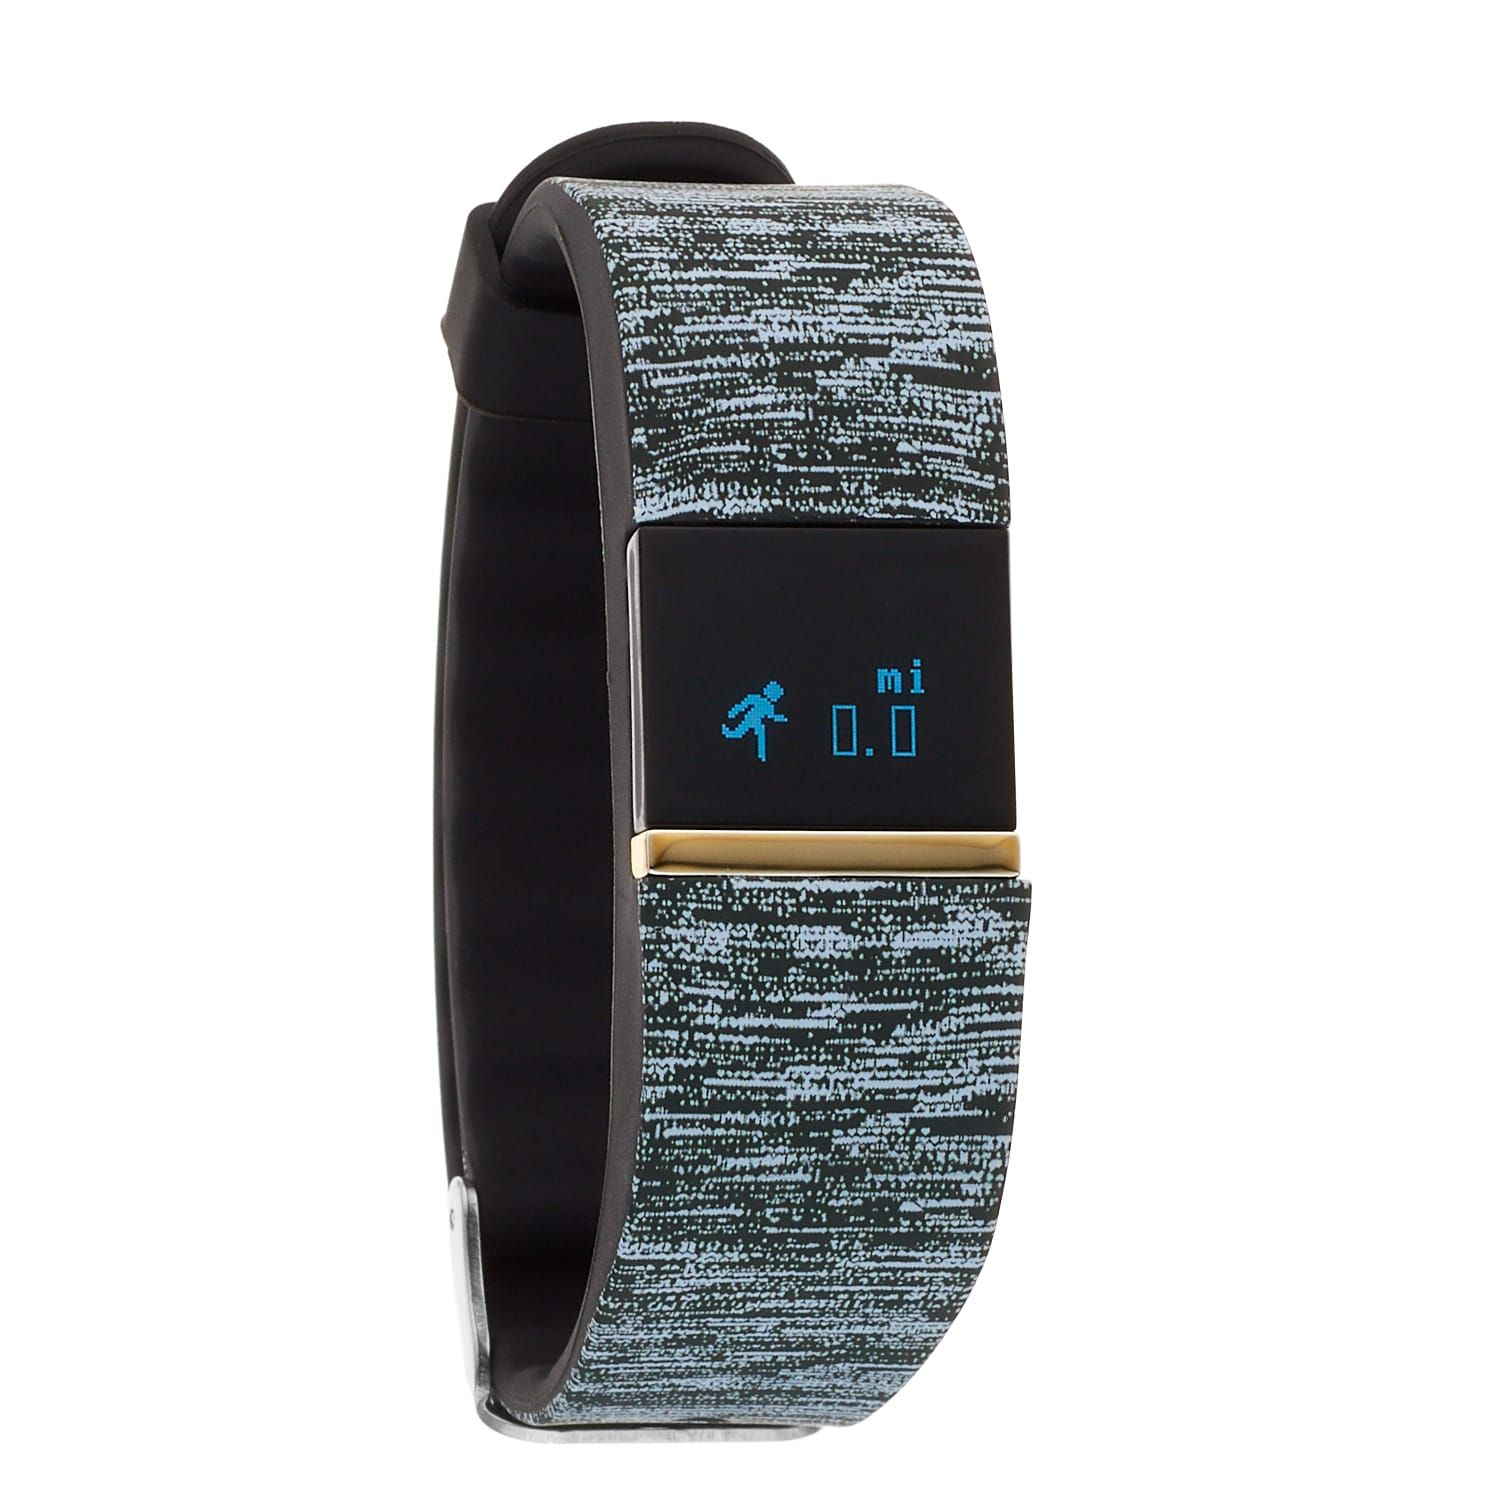 iFITNESS Women's Fitness Tracker & Interchangeable Band Set - IFT2676BK668-078 #Affiliate #Fitness,...